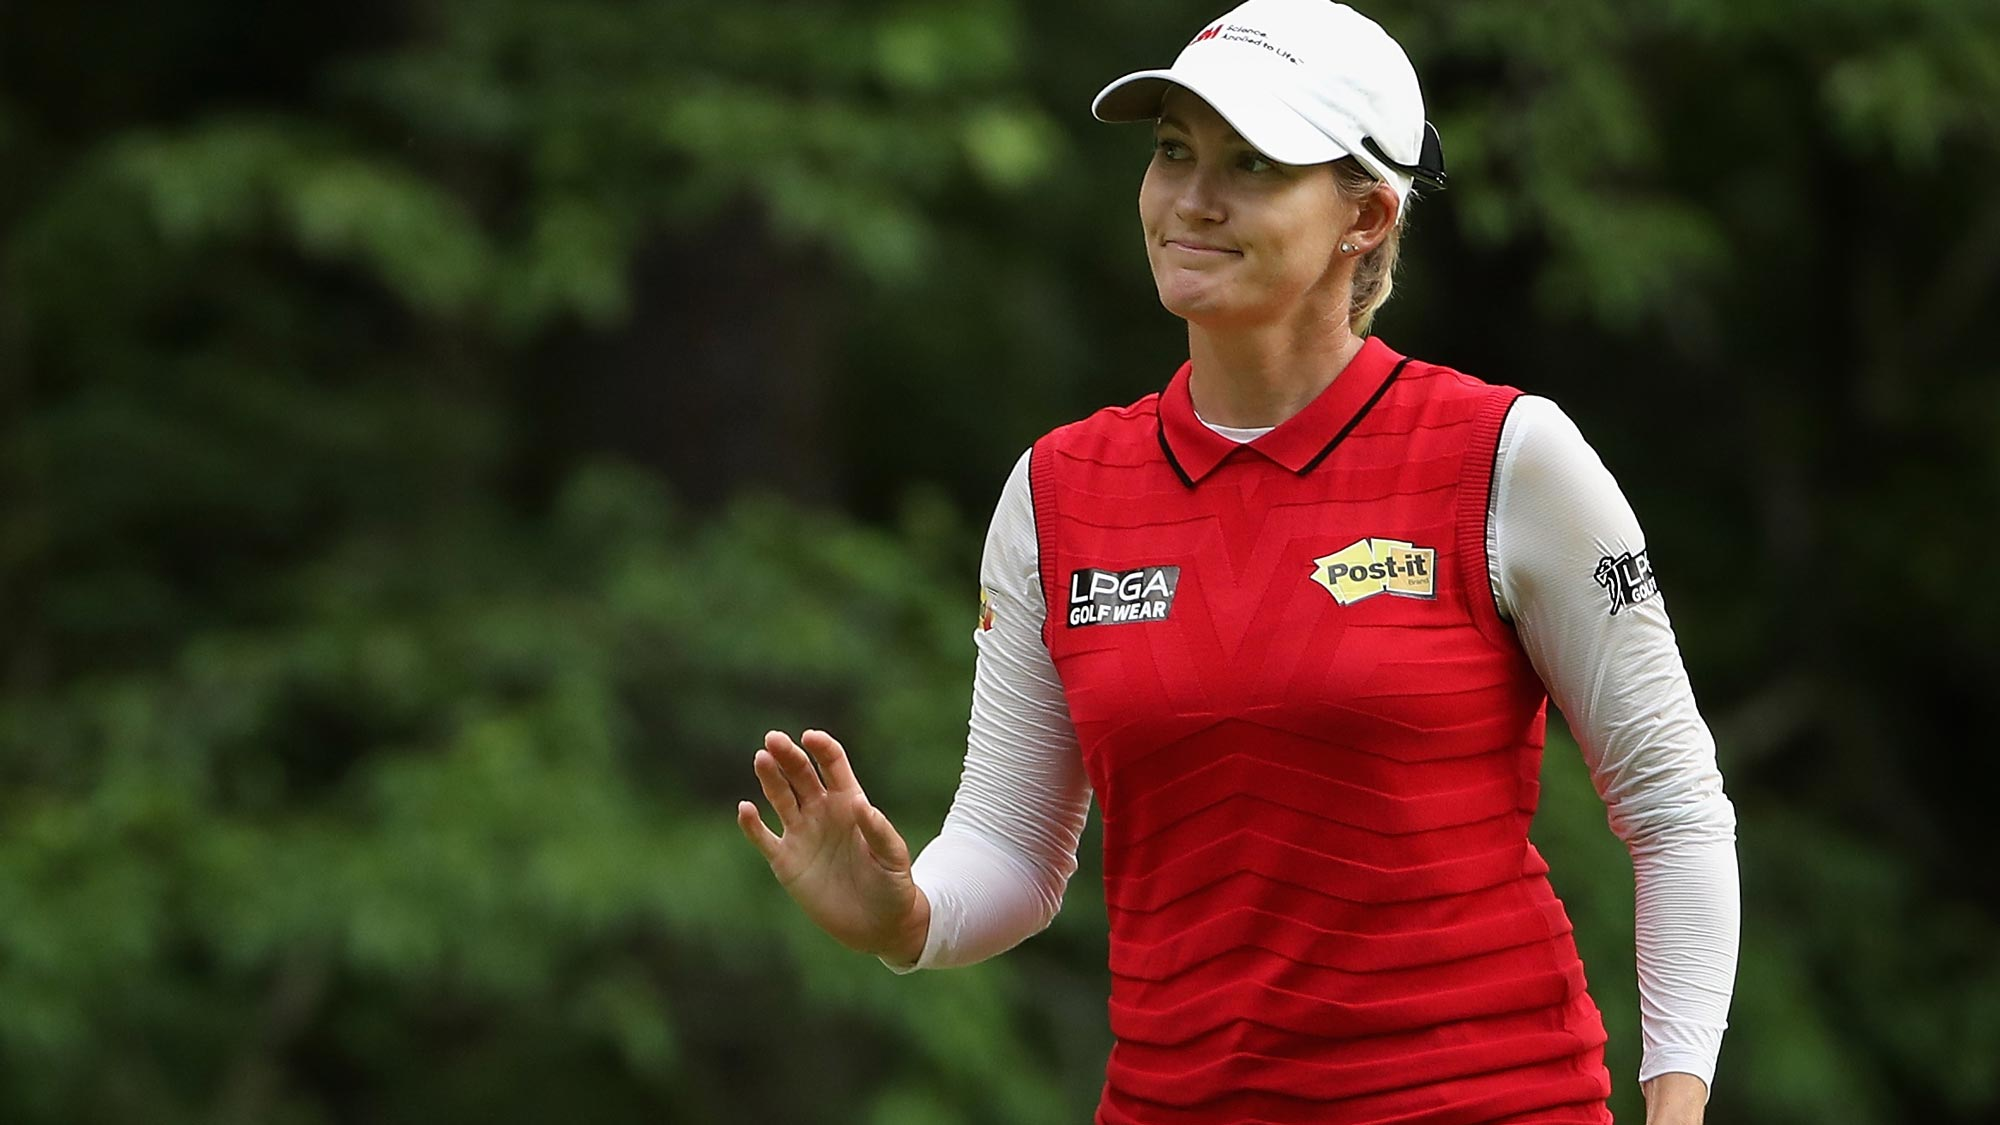 Ariya Jutanugarn wins US Women's Open after four-hole play-off